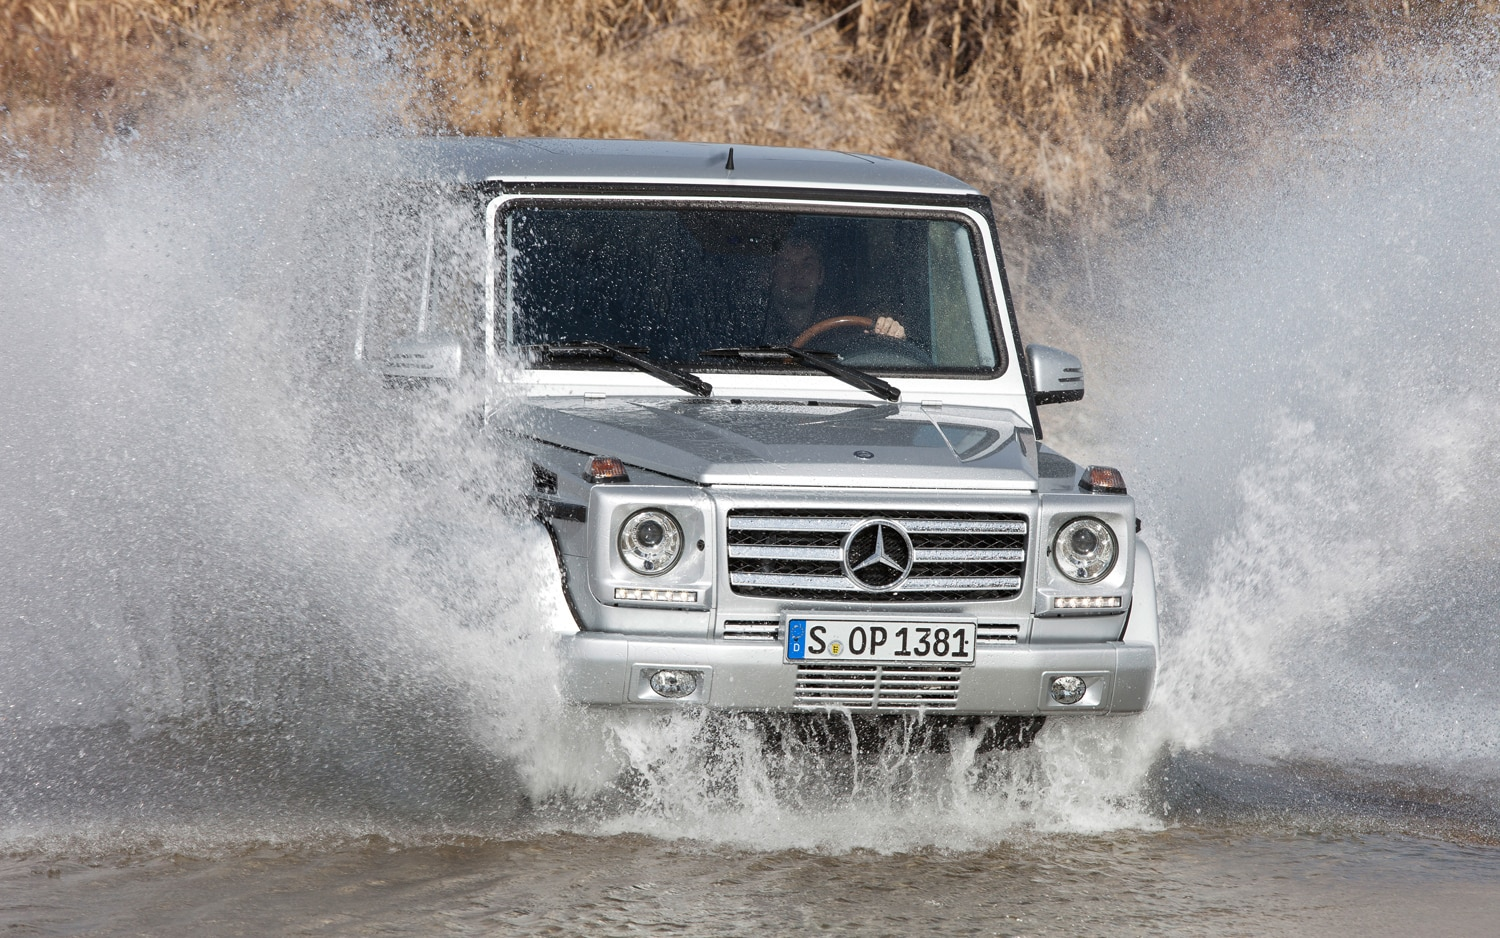 2013 Mercedes Benz G Class Front End In Water